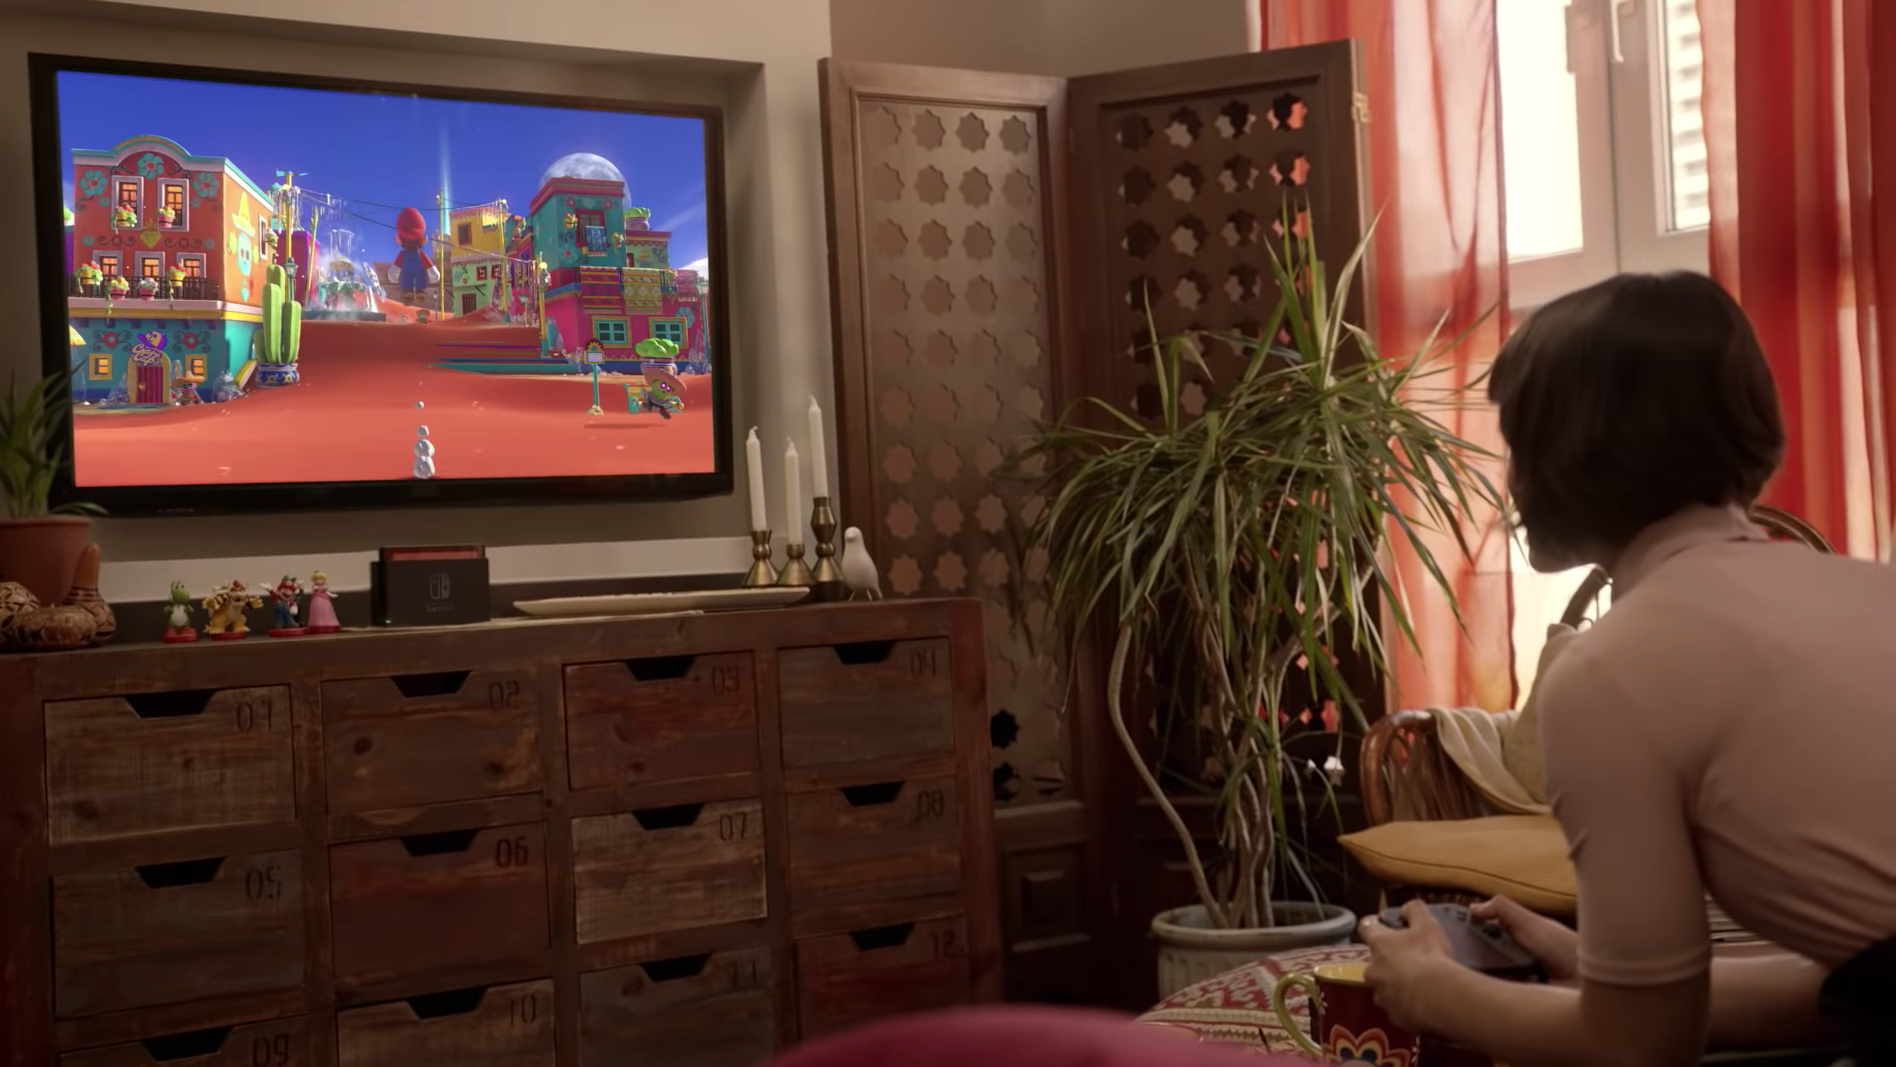 Nintendo Spent An Estimated $3.7 Million On TV Ads Last Month, Highest Of All Gaming Brands